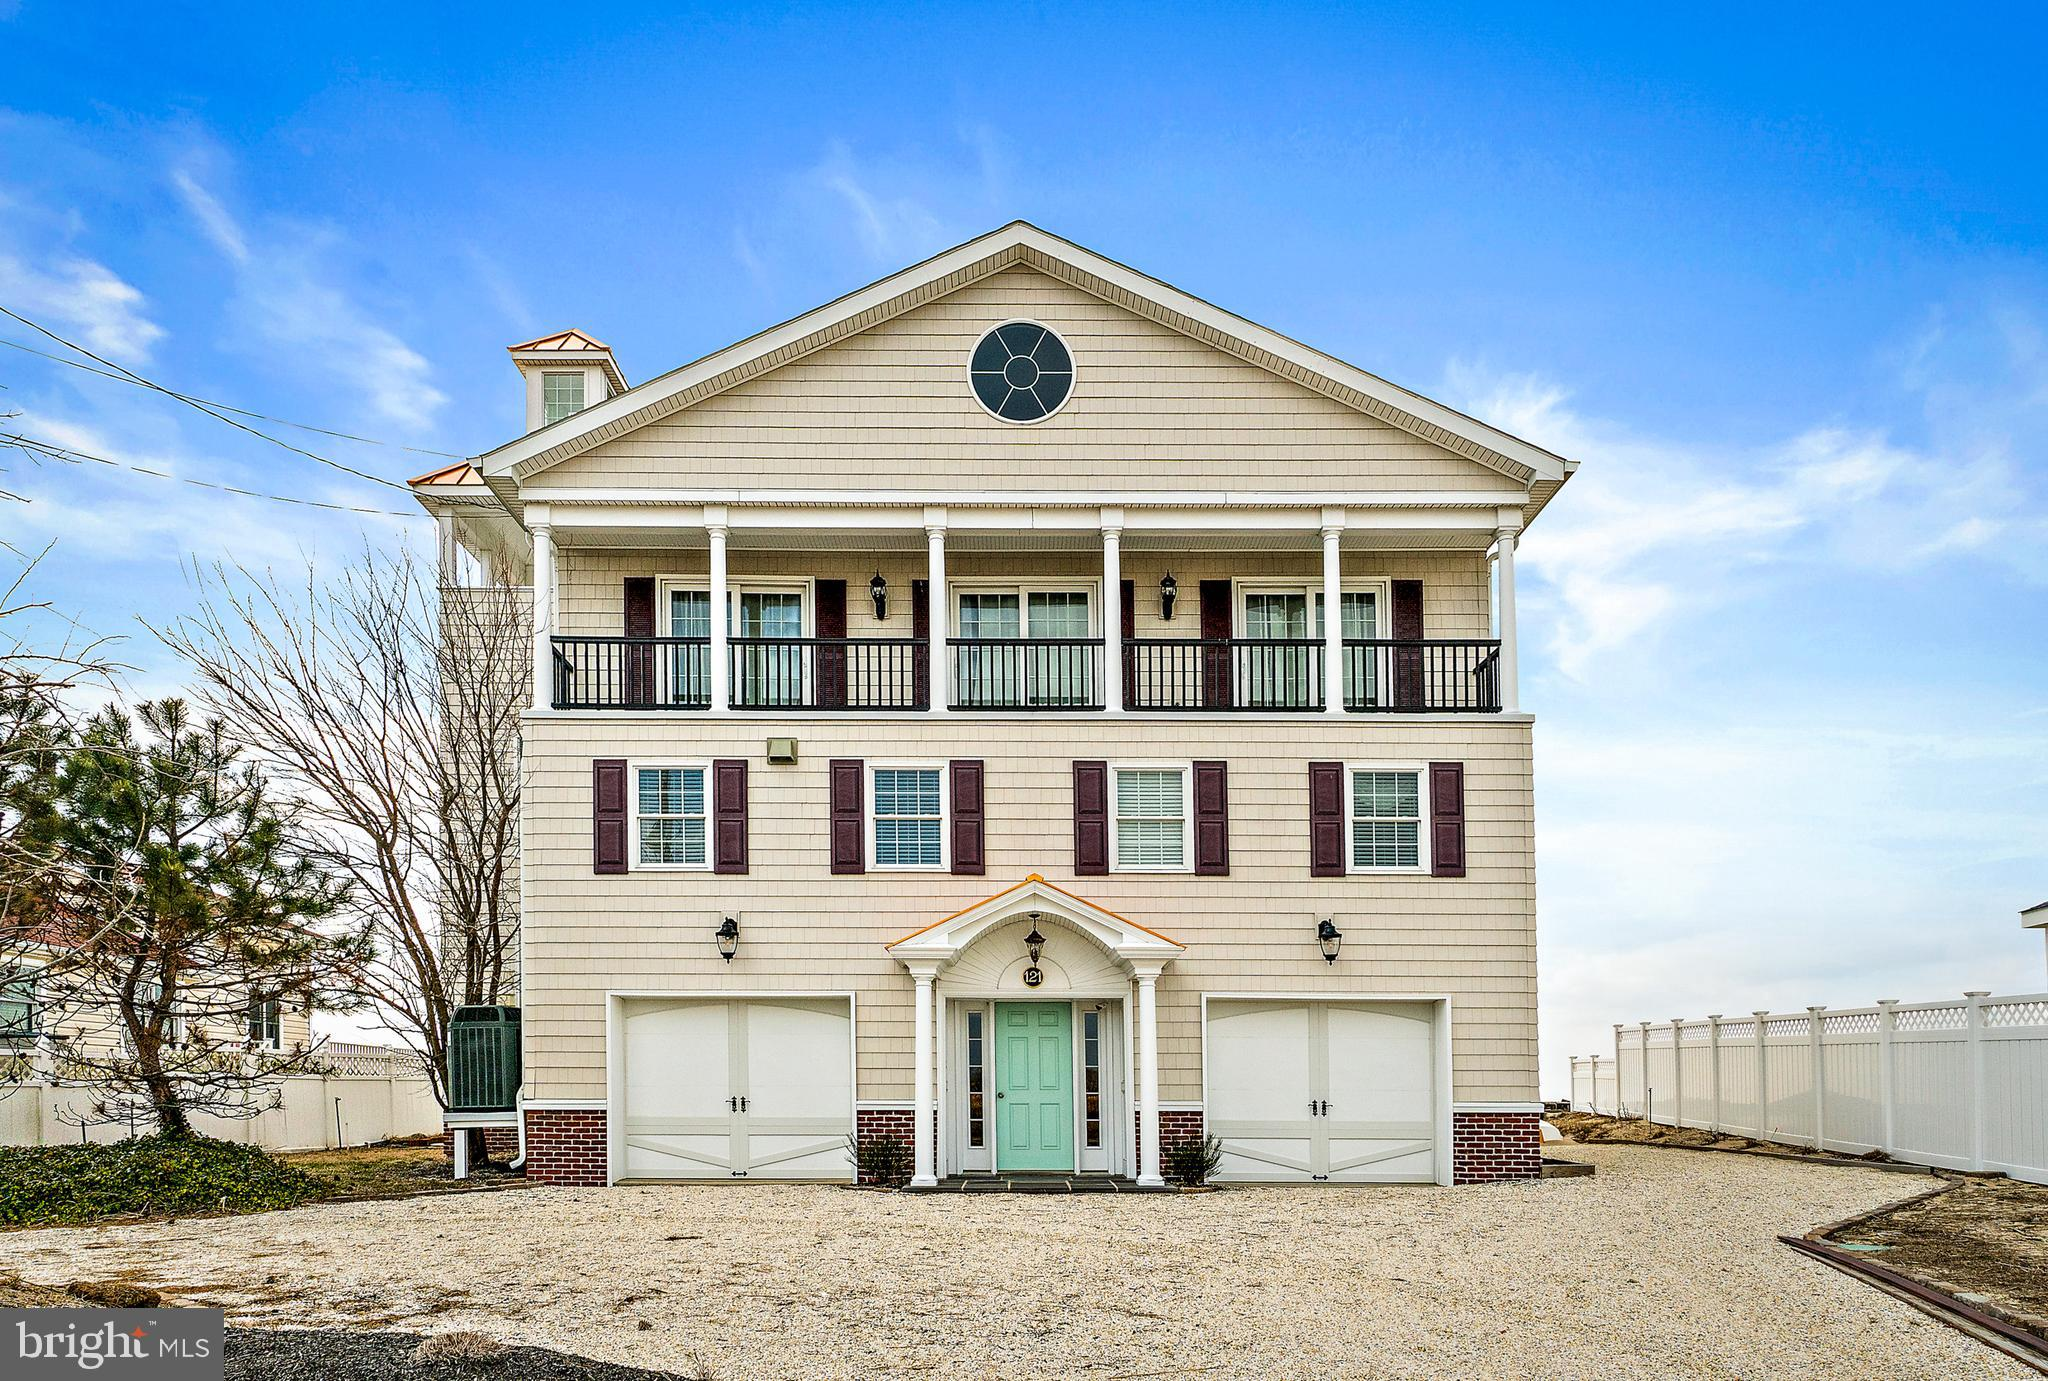 121 BEACH AVE, CAPE MAY COURT HOUSE, NJ 08210